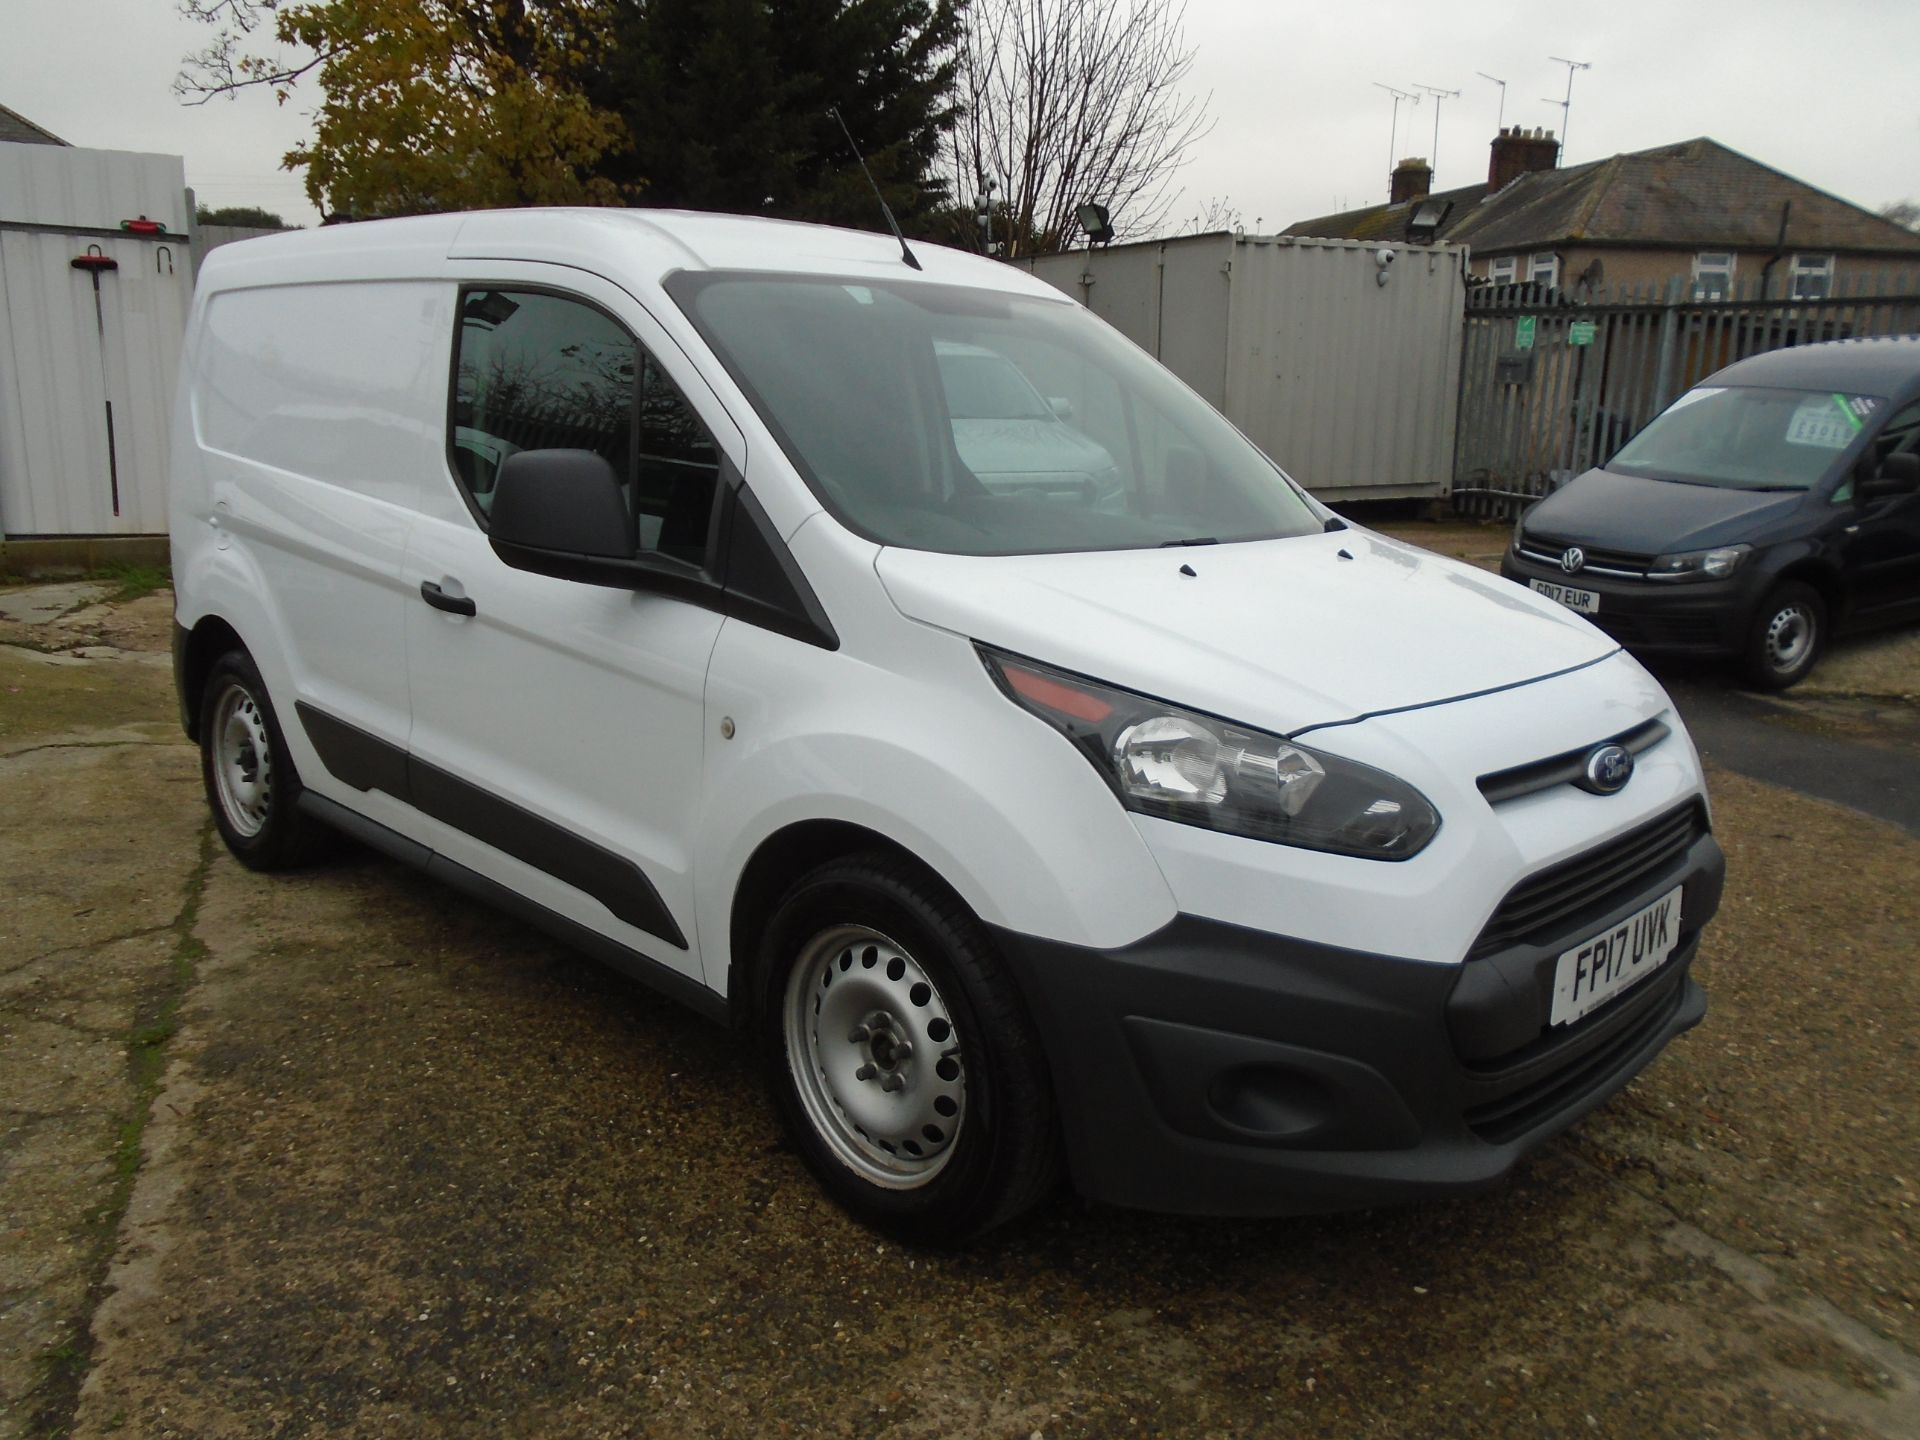 2017 Ford Transit Connect 1.5 Tdci 75Ps Van EURO 6 (FP17UVK)